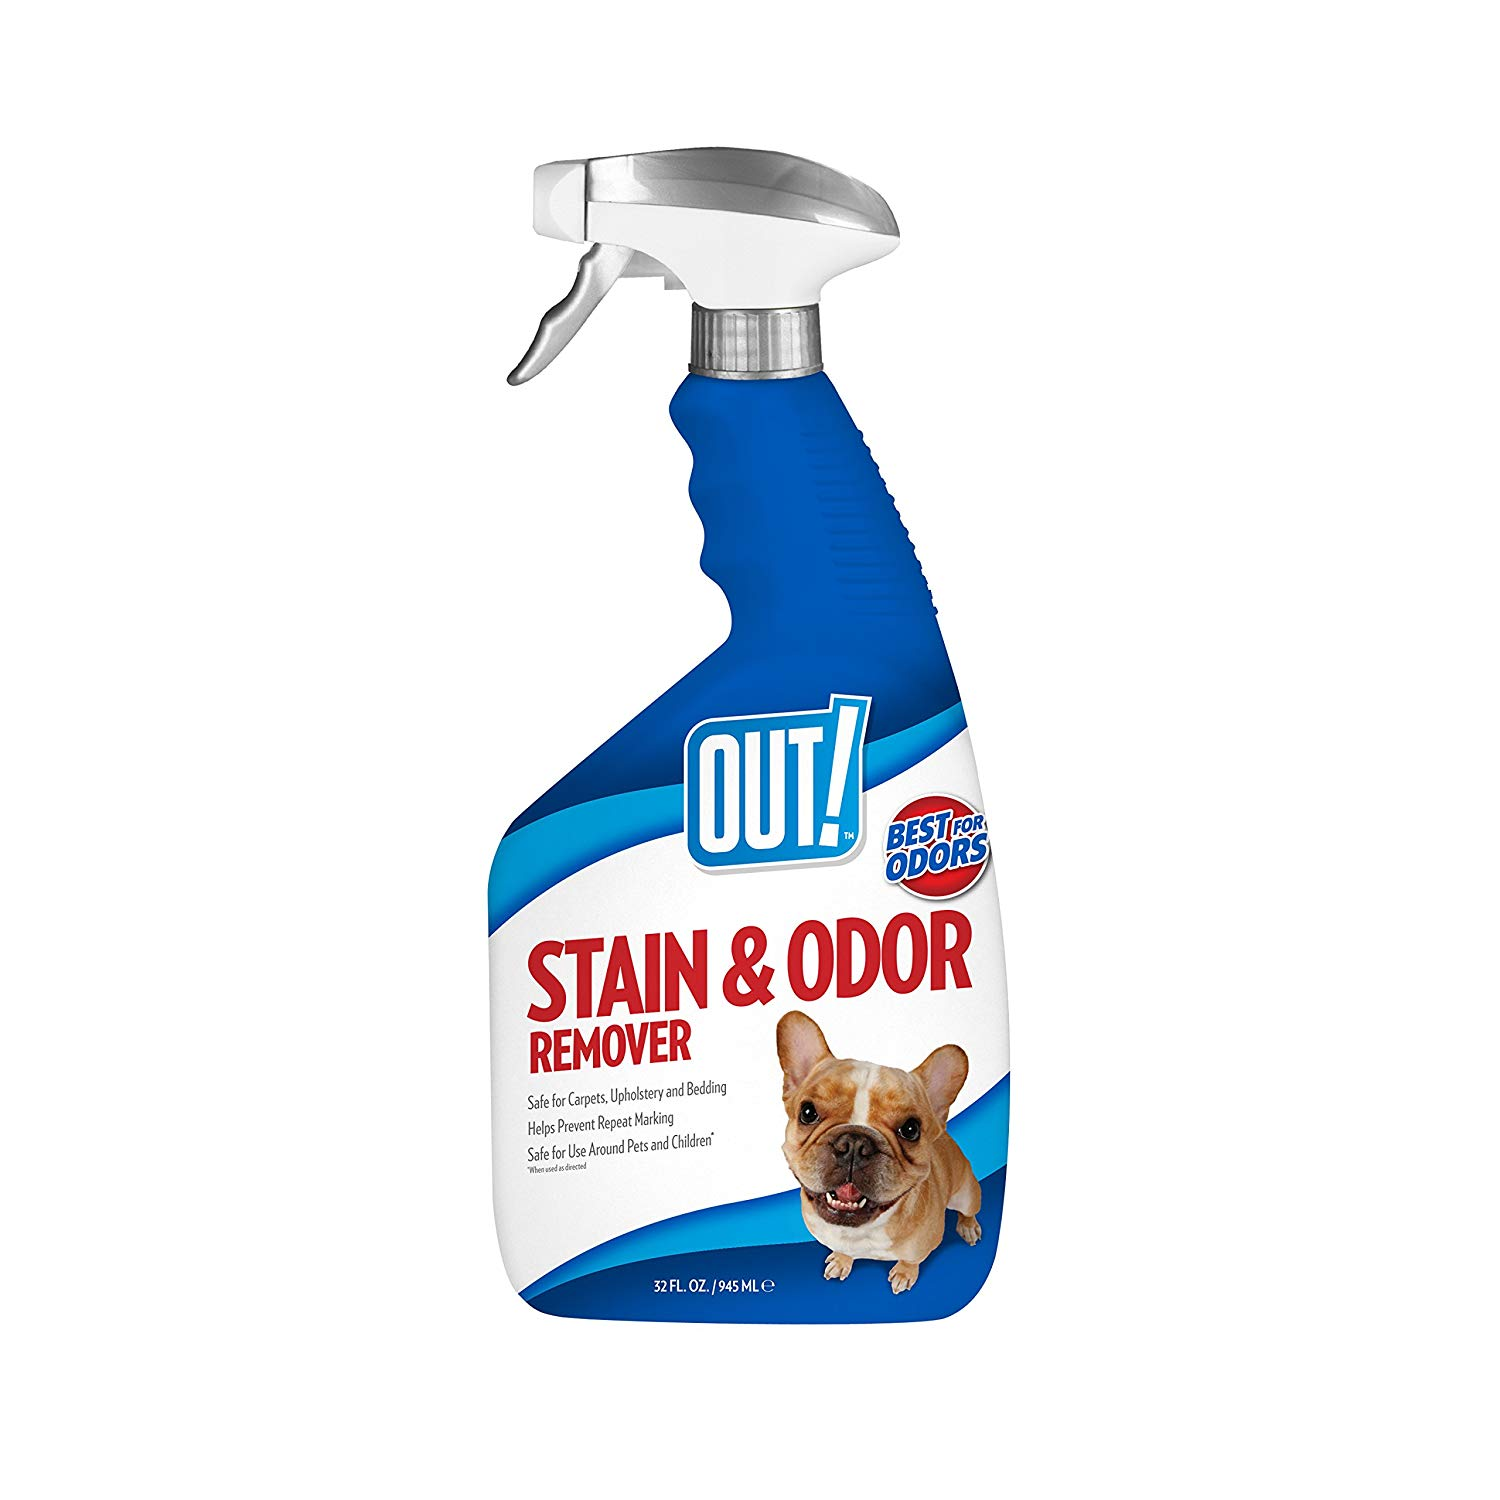 Out! Pet Stain & Odor Remover-Best Budget Pet Stain and Odor Remover